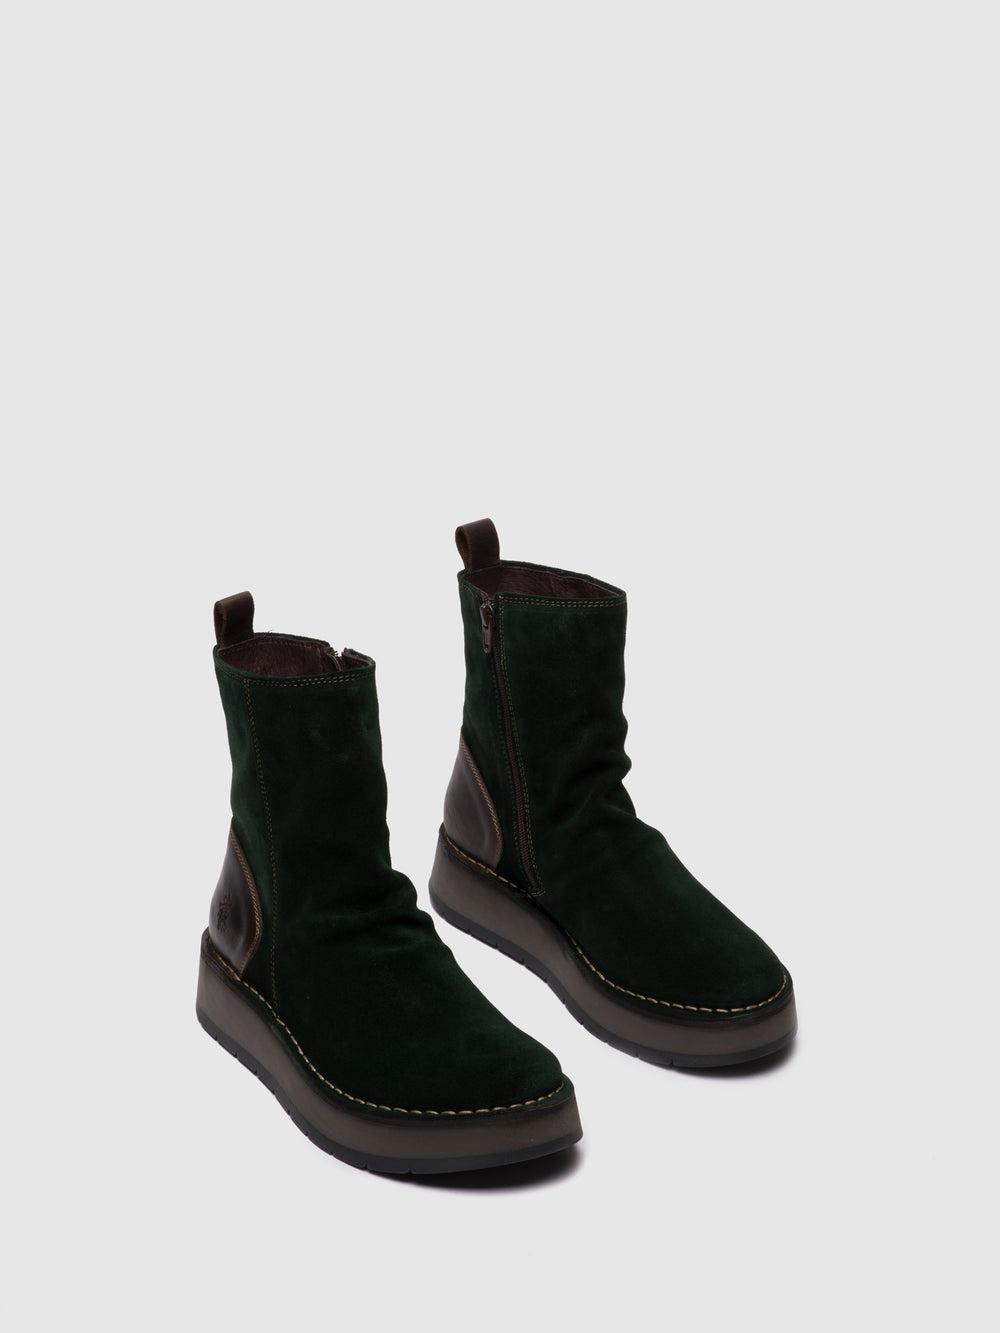 Zip Up Ankle Boots RENO053FLY OILSUEDE/RUG GREEN FOREST/DK.BROWN